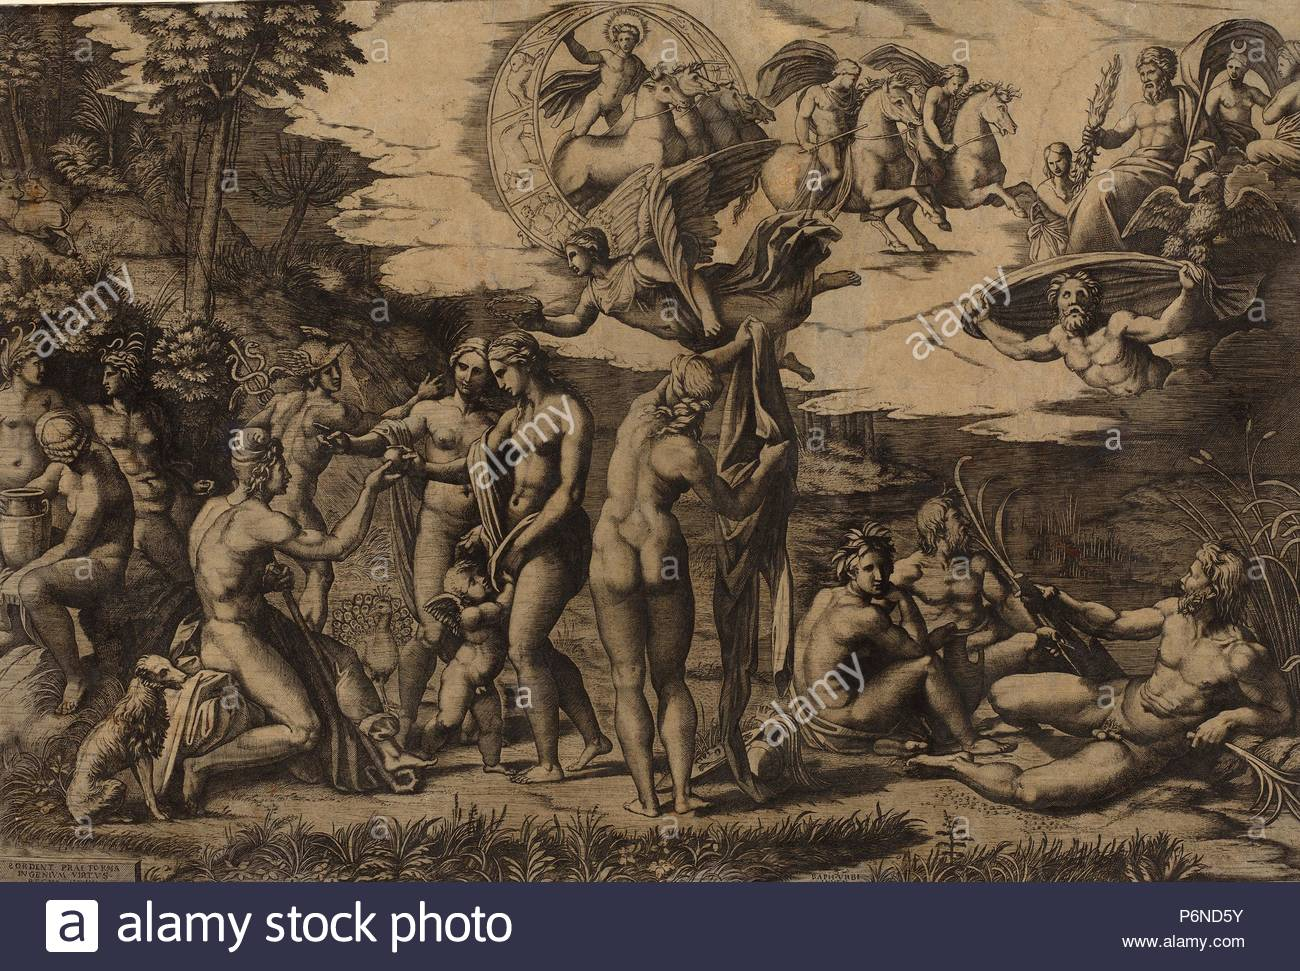 Marcantonio Raimondi after Raphael (Italian, c. 1480 - c. 1534), The  Judgment of Paris, engraving.